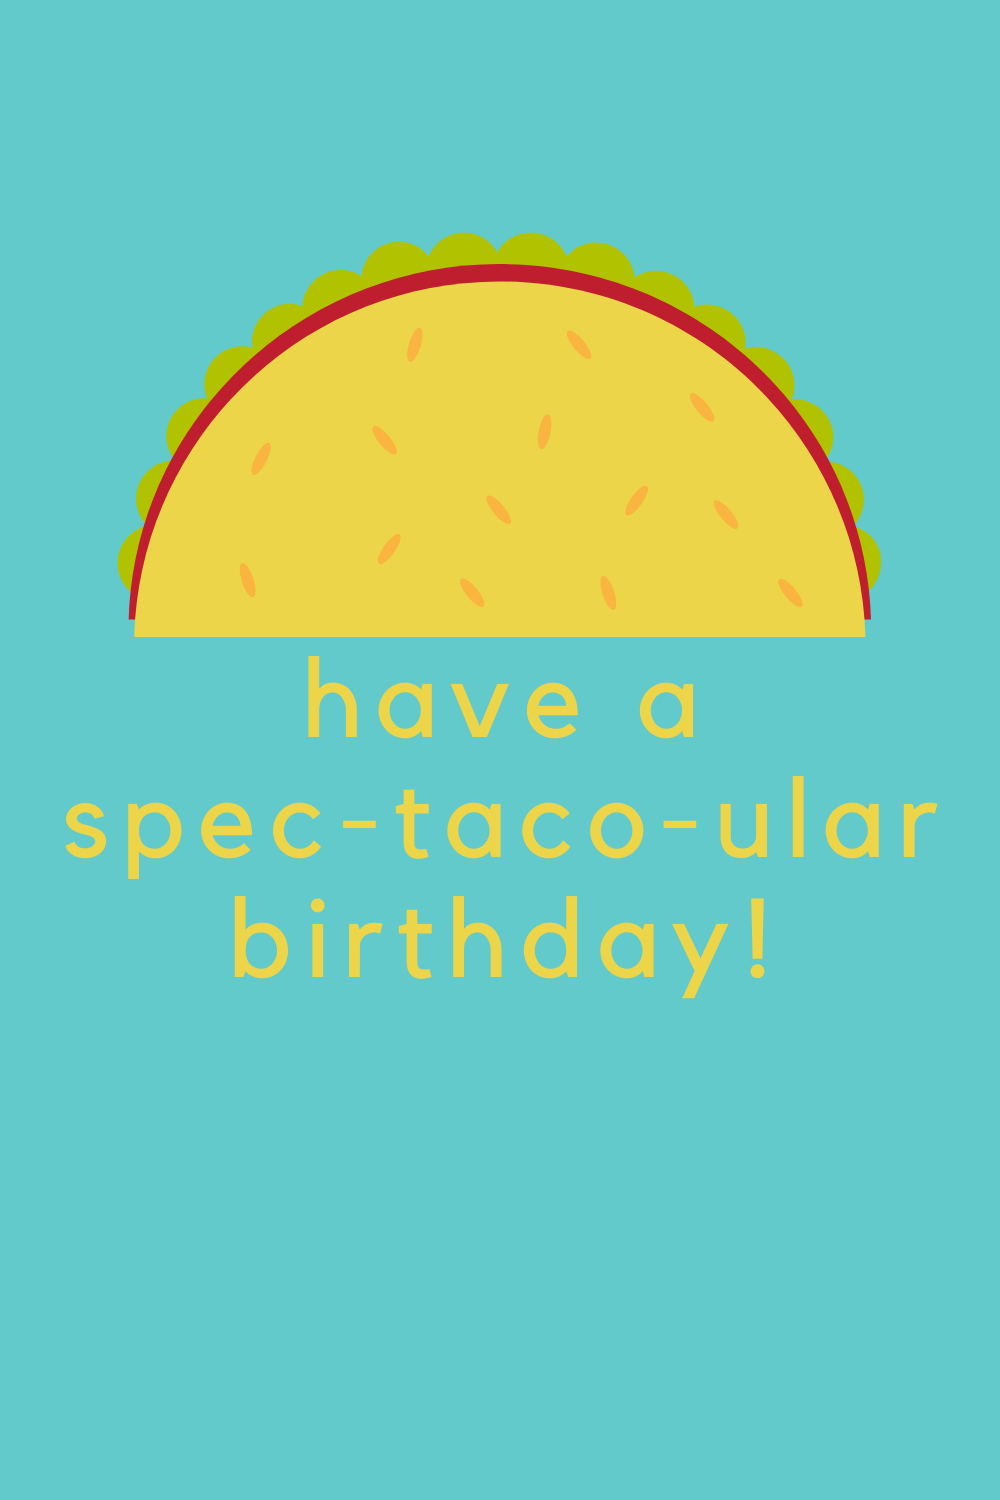 punny birthday images